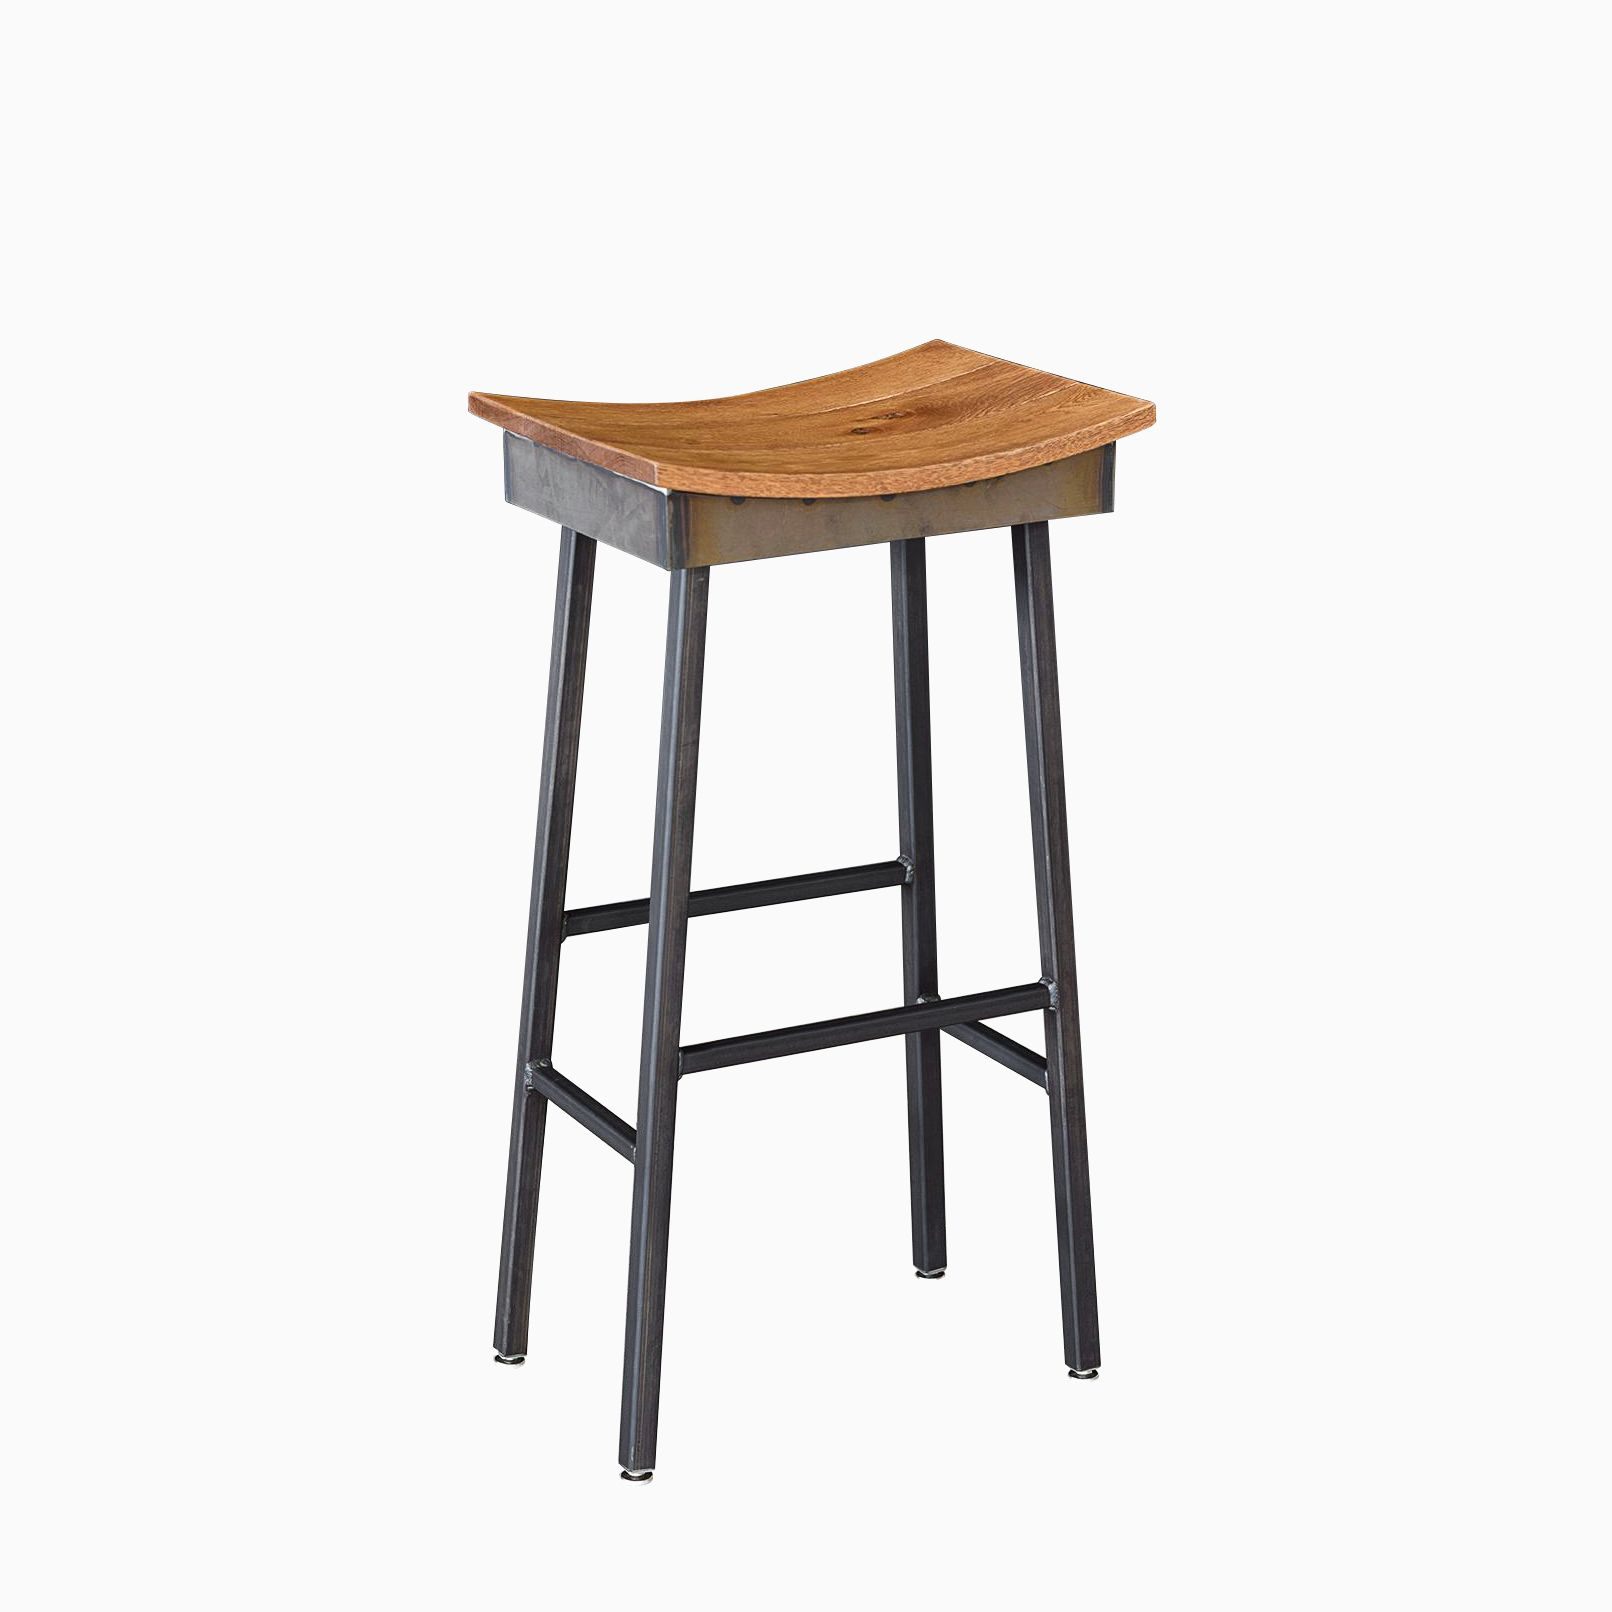 Industrial Design Bar Stools Buy A Custom Made Industrial Modern Saddle Stool Made To